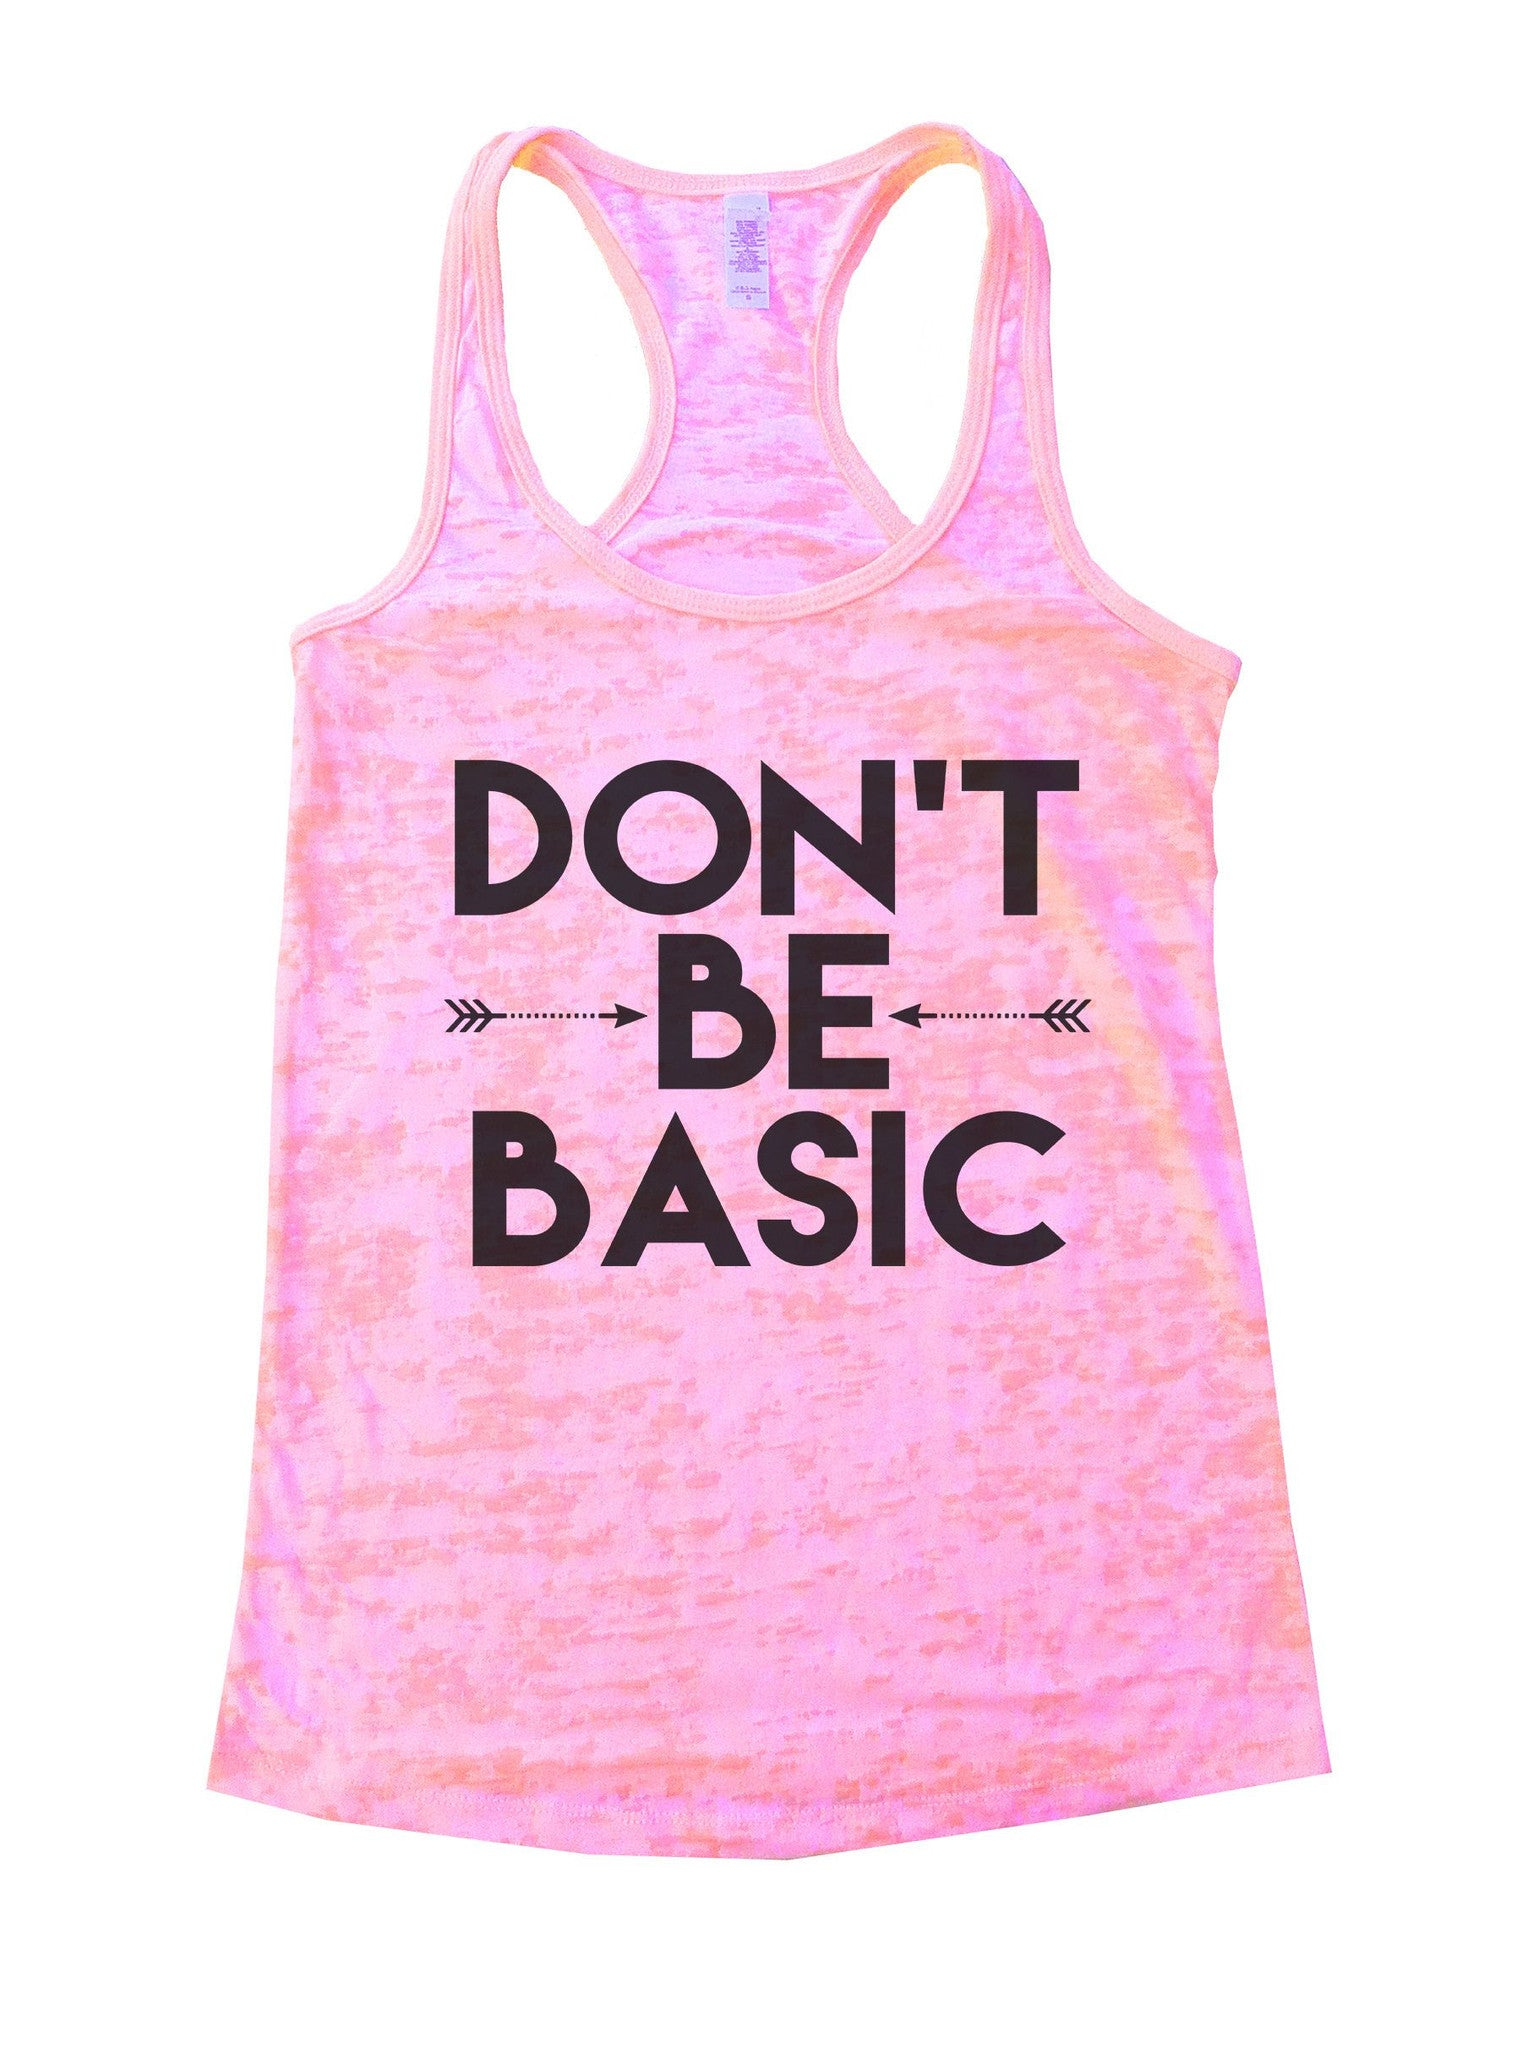 Don't Be Basic Burnout Tank Top By BurnoutTankTops.com - 920 - Funny Shirts Tank Tops Burnouts and Triblends  - 2